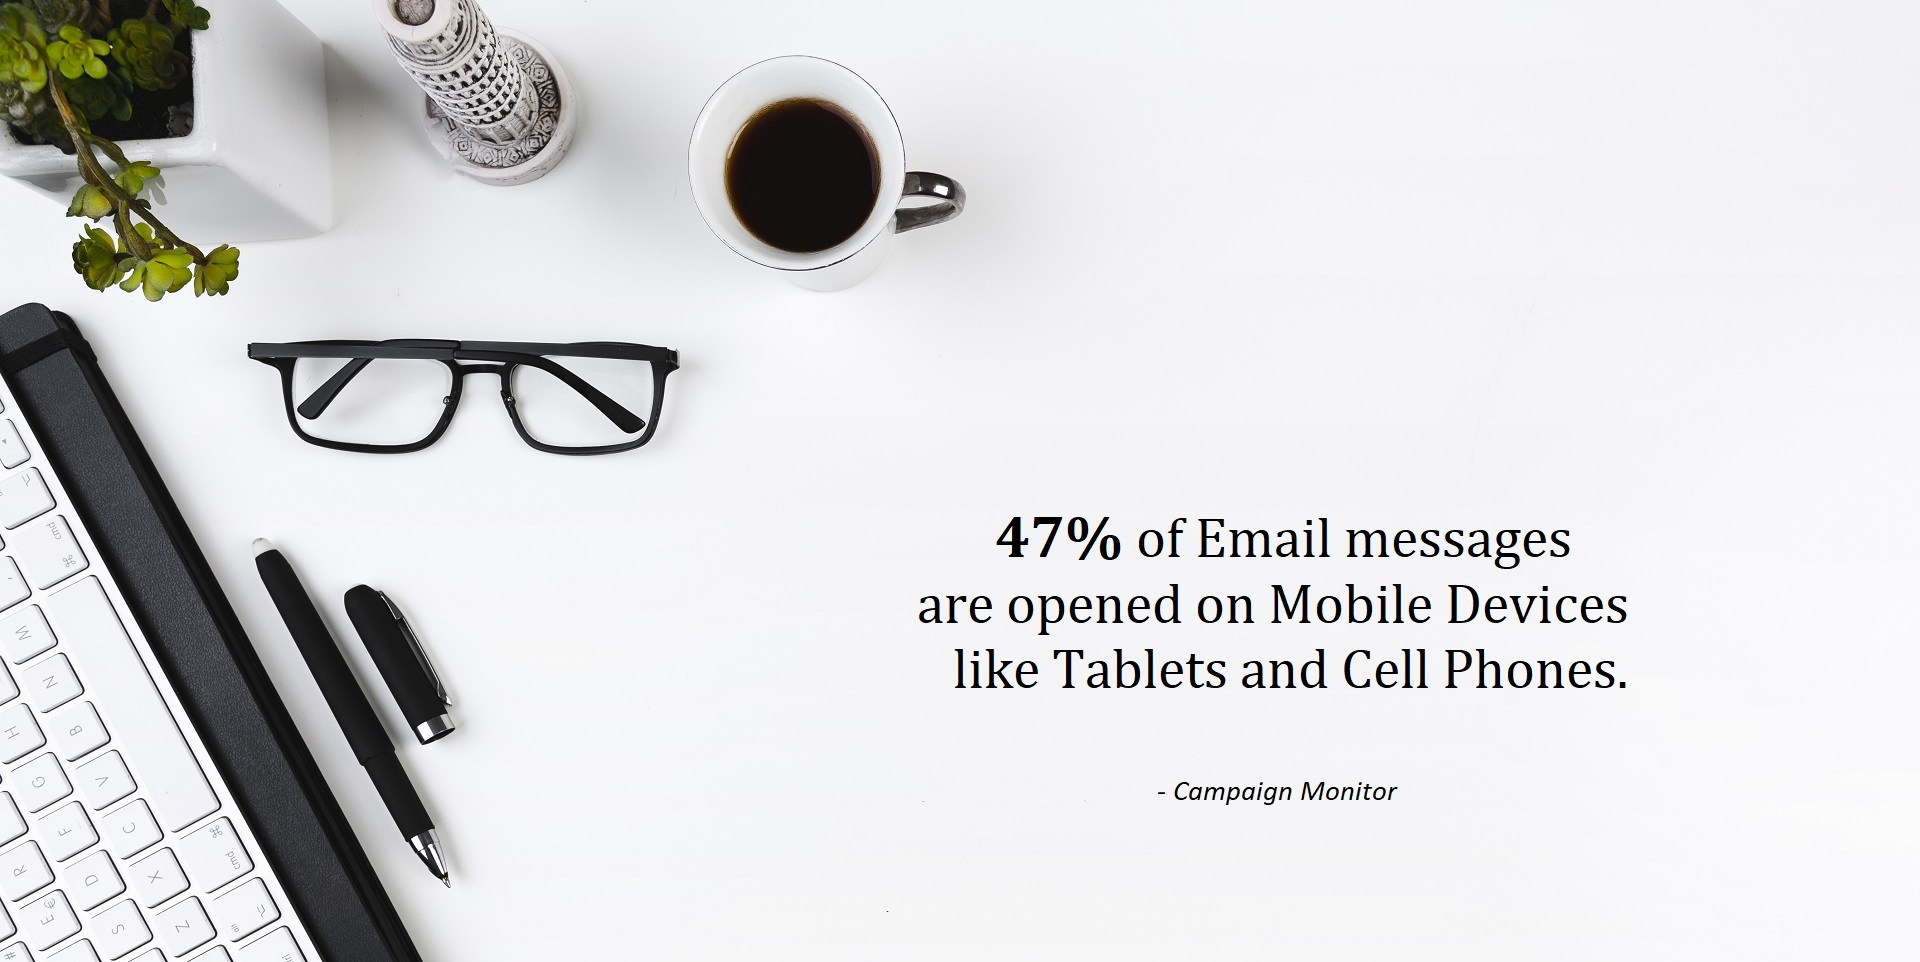 SMS Marketing Complements Email Marketing - SMS and email